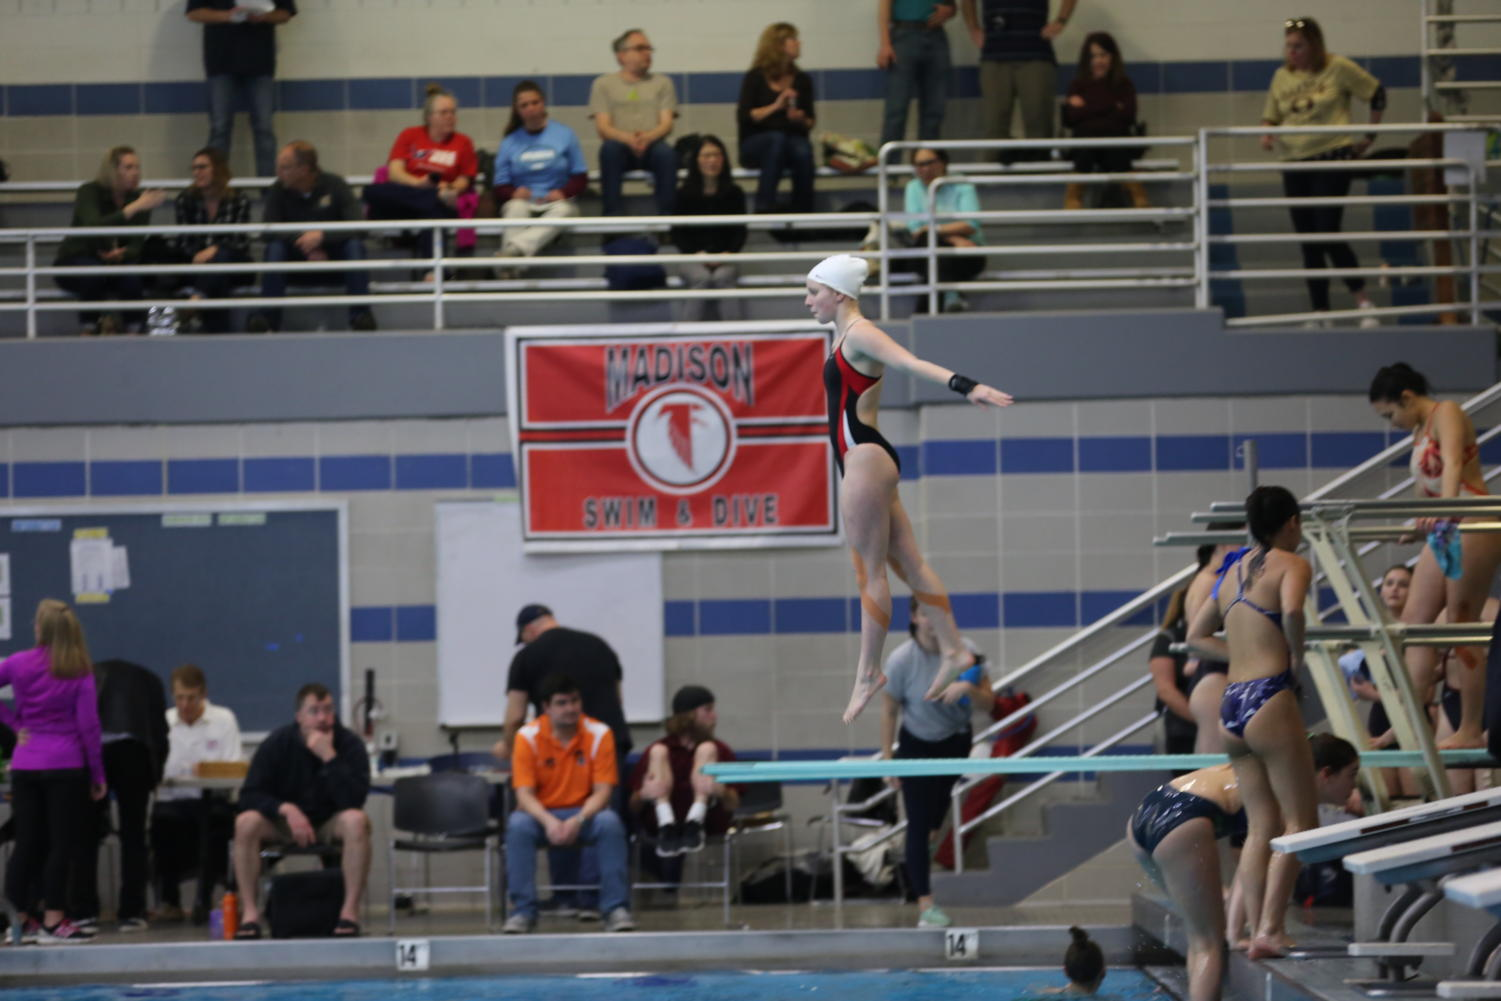 Zazi Halla prepares for her dive in the girls' one-meter division at states. She finished in fourth place.